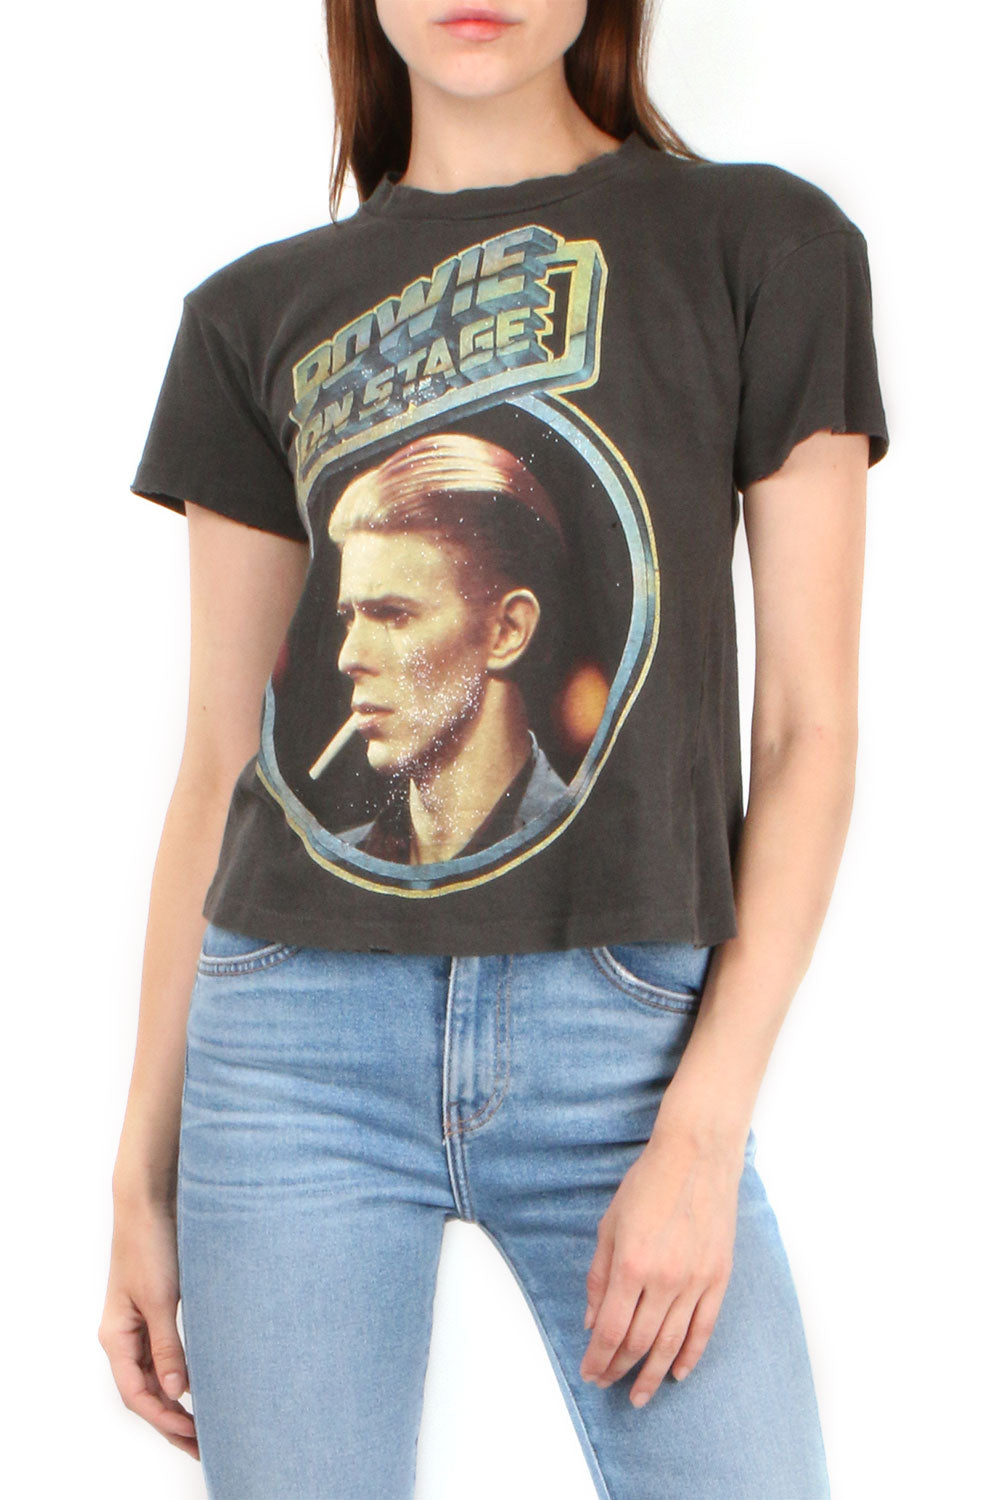 Bowie On Stage Crop Tee